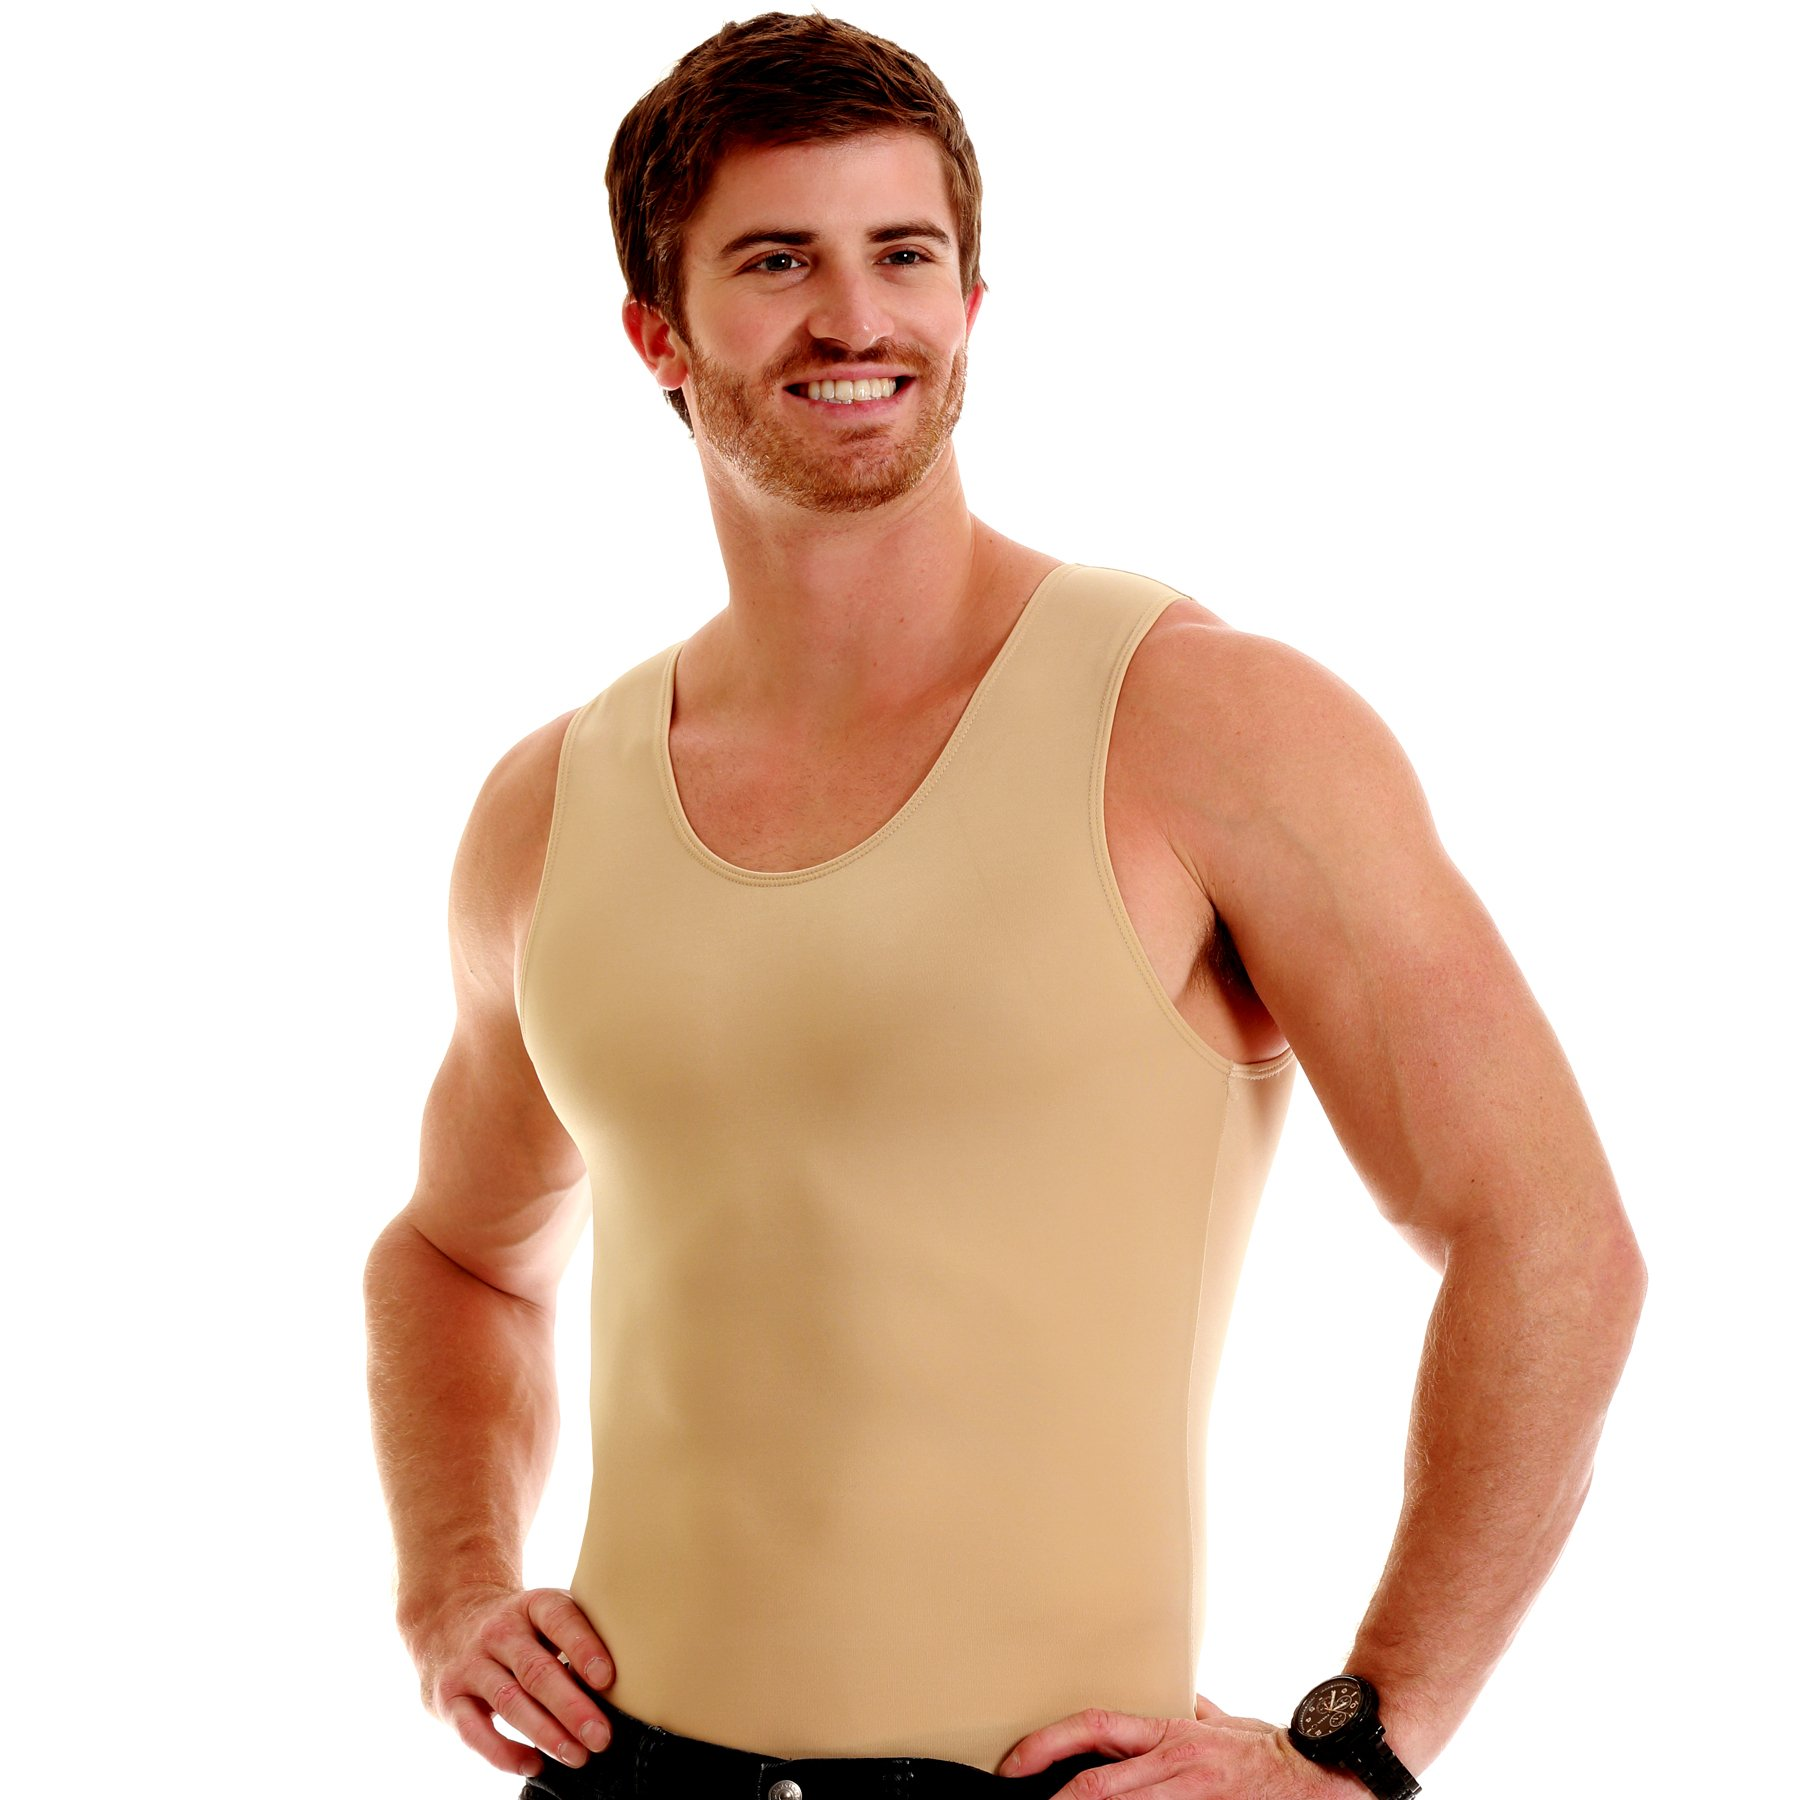 Insta Slim 3 Pack Muscle Tank, Look Up to 5 Inches Slimmer Instantly, Nude, Large, The Magic is in The Fabric! by Insta Slim (Image #1)